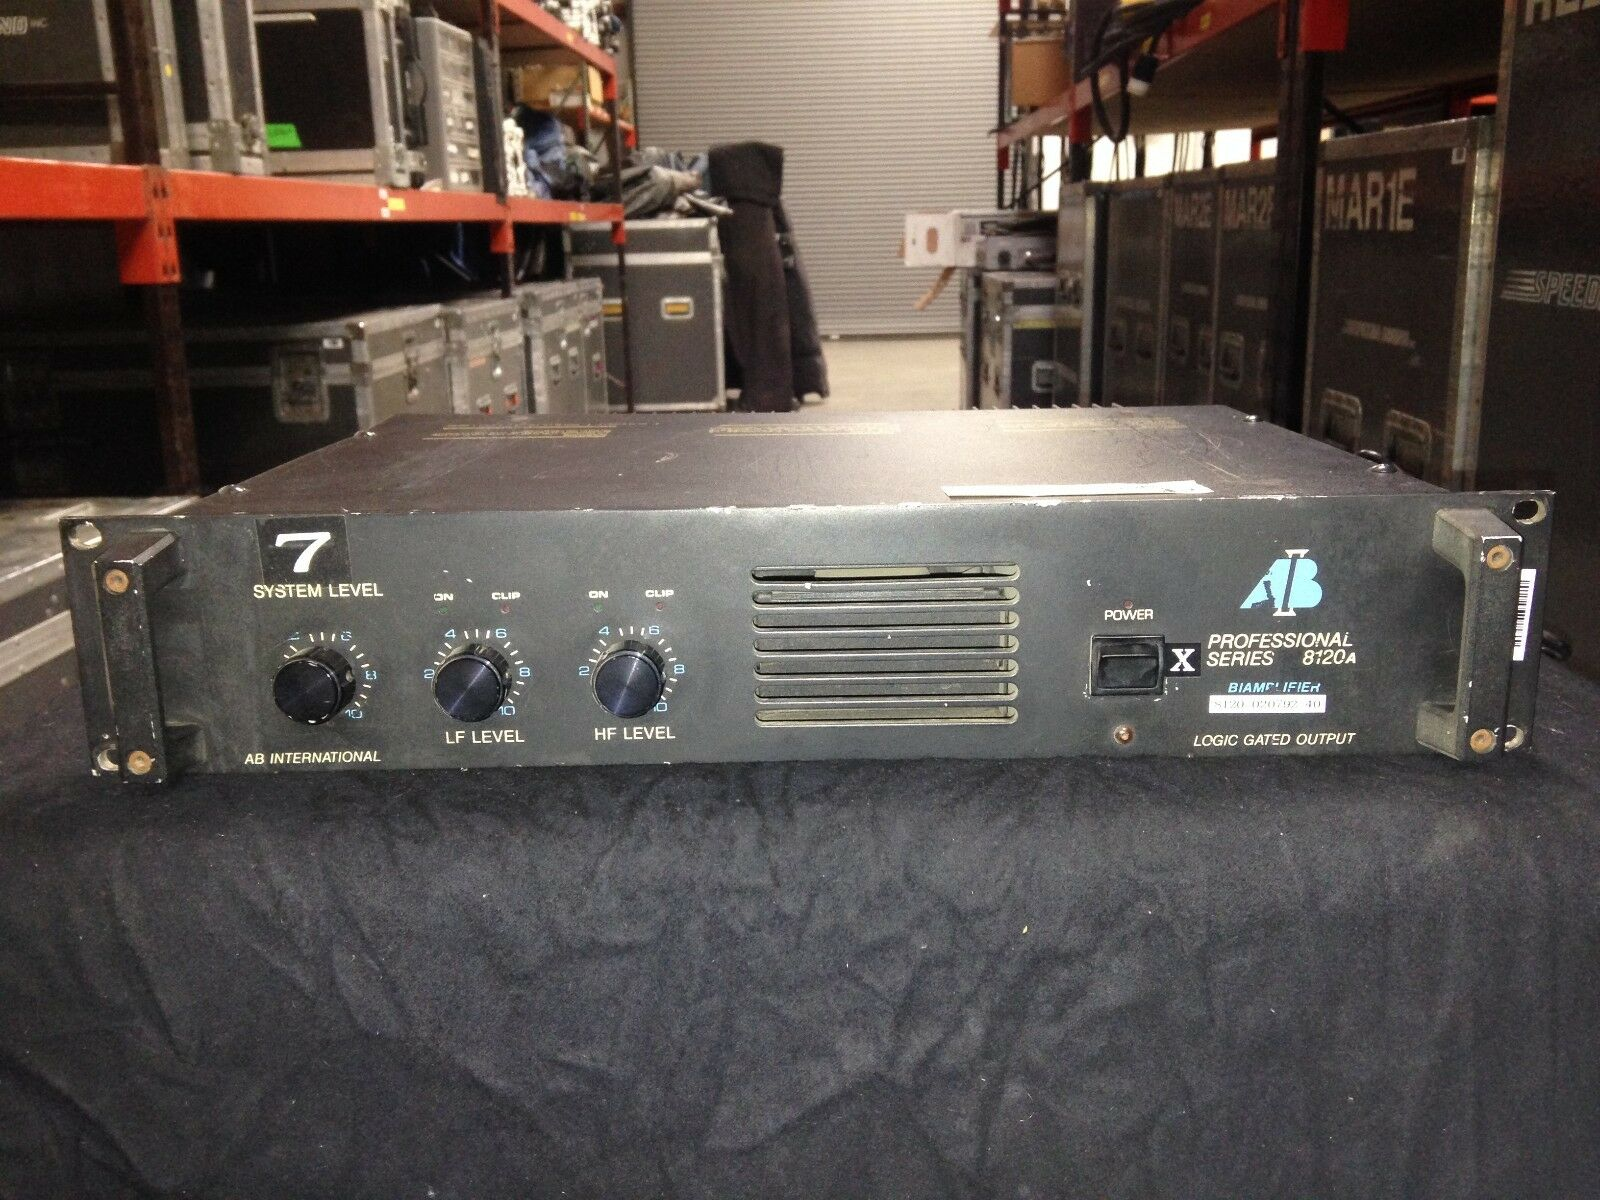 AB International Professional 8120A Monorual Bi-Amp Power Verstärker